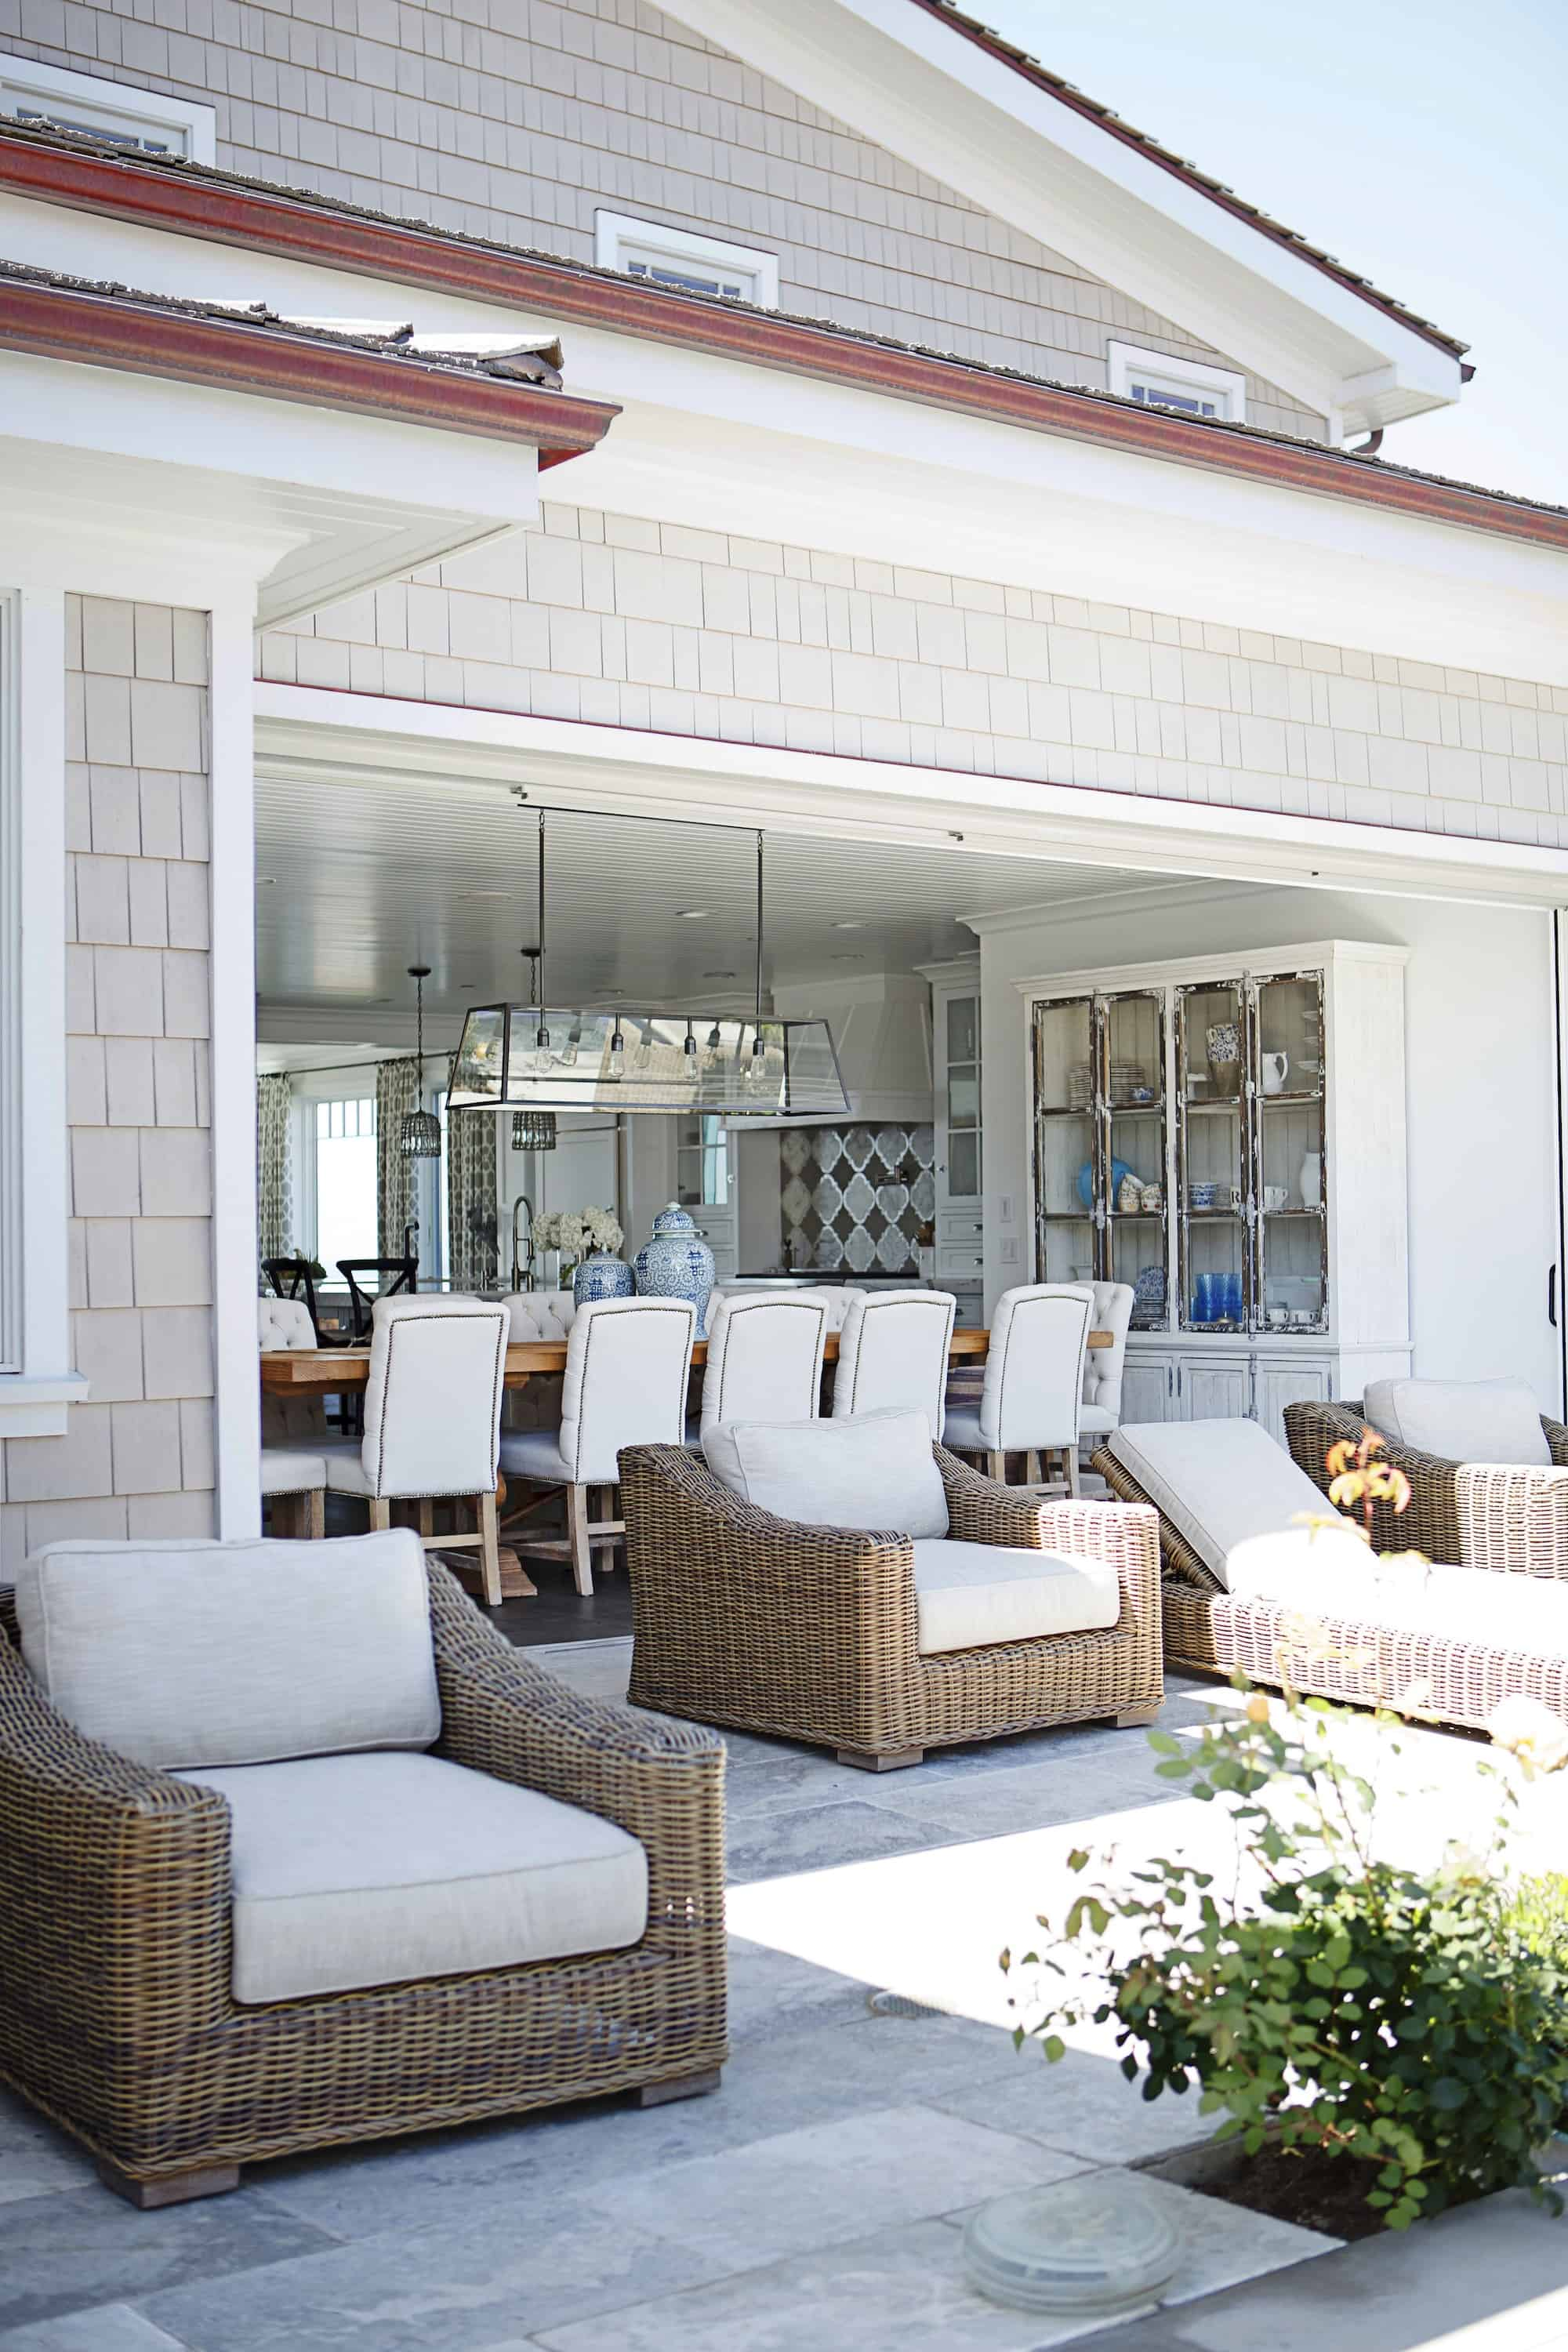 When you want to mesh together your outdoor space with your indoor area invisible doors is the way to go. They create a seamless connection between the two that can be quite difficult to distinguish.